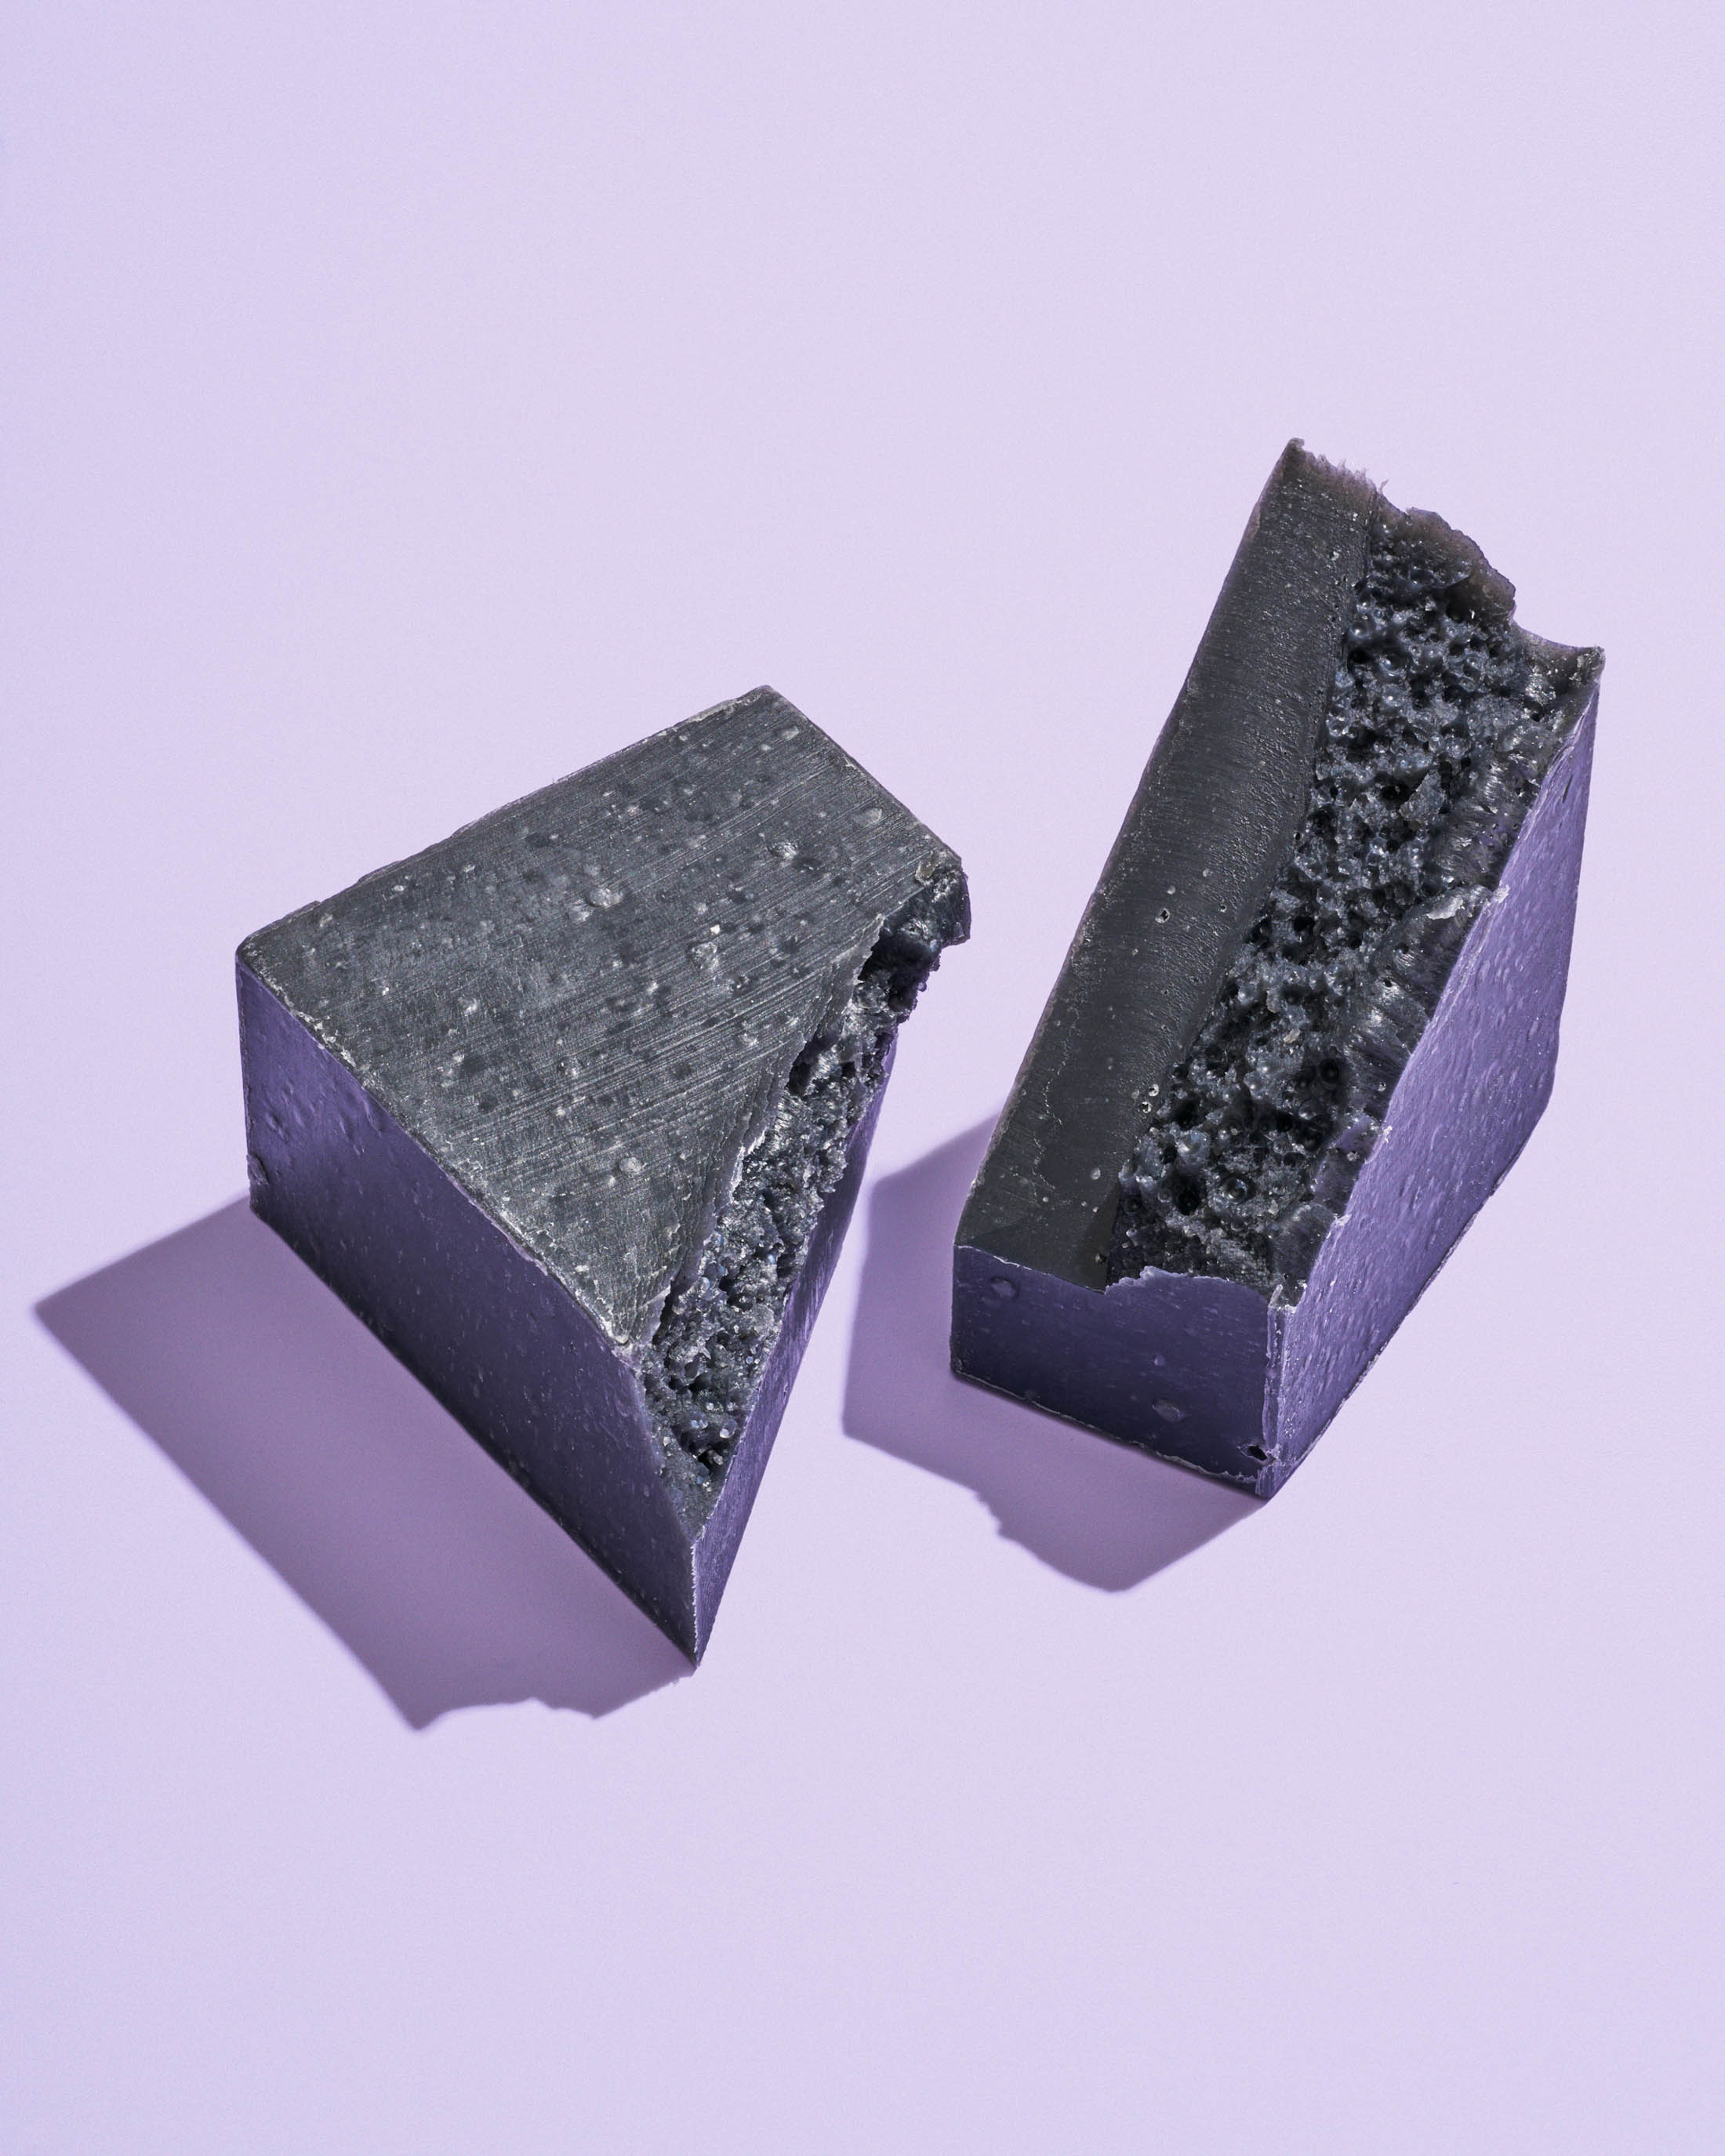 STAN Herbivore Charcoal Soap bar